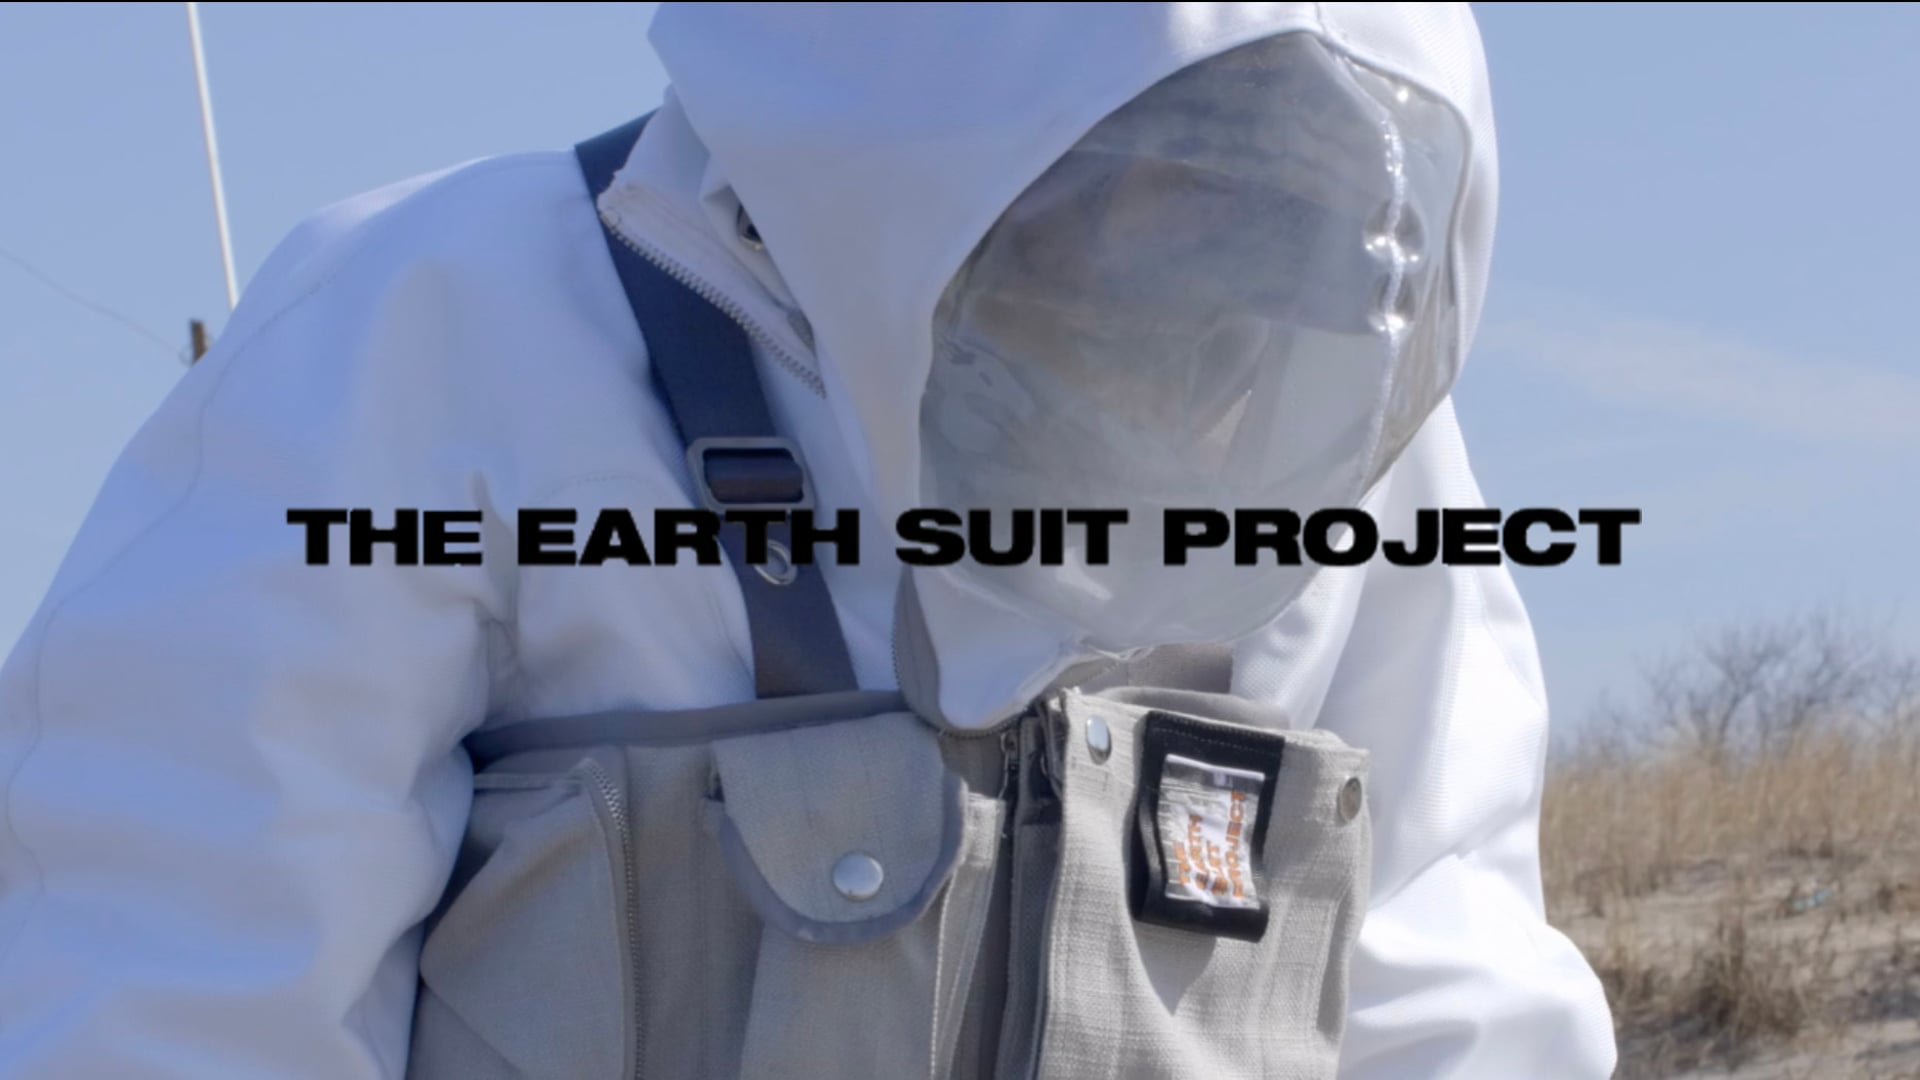 THE EARTH SUIT PROJECT